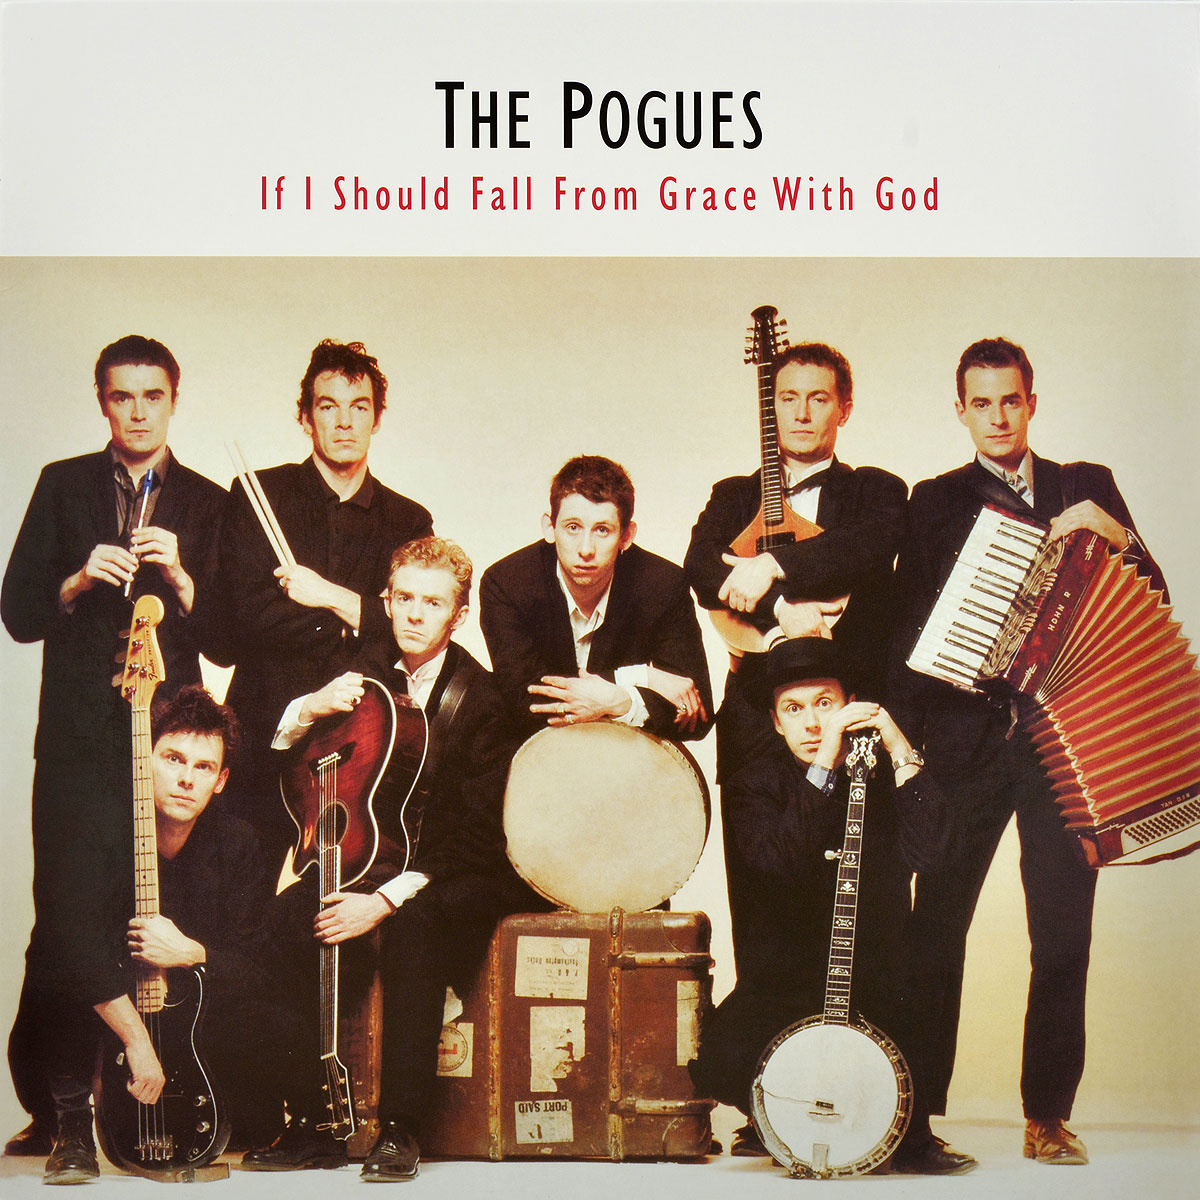 The Pogues The Pogues. If I Should Fall From Grace With God (LP)